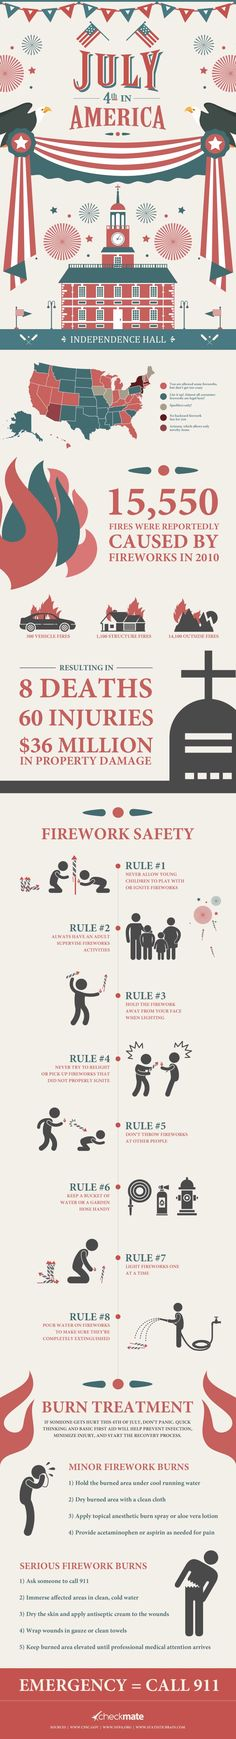 Don't Blow Yourself Up This 4th of July   #infographic #Festival #America #IndependenceDay